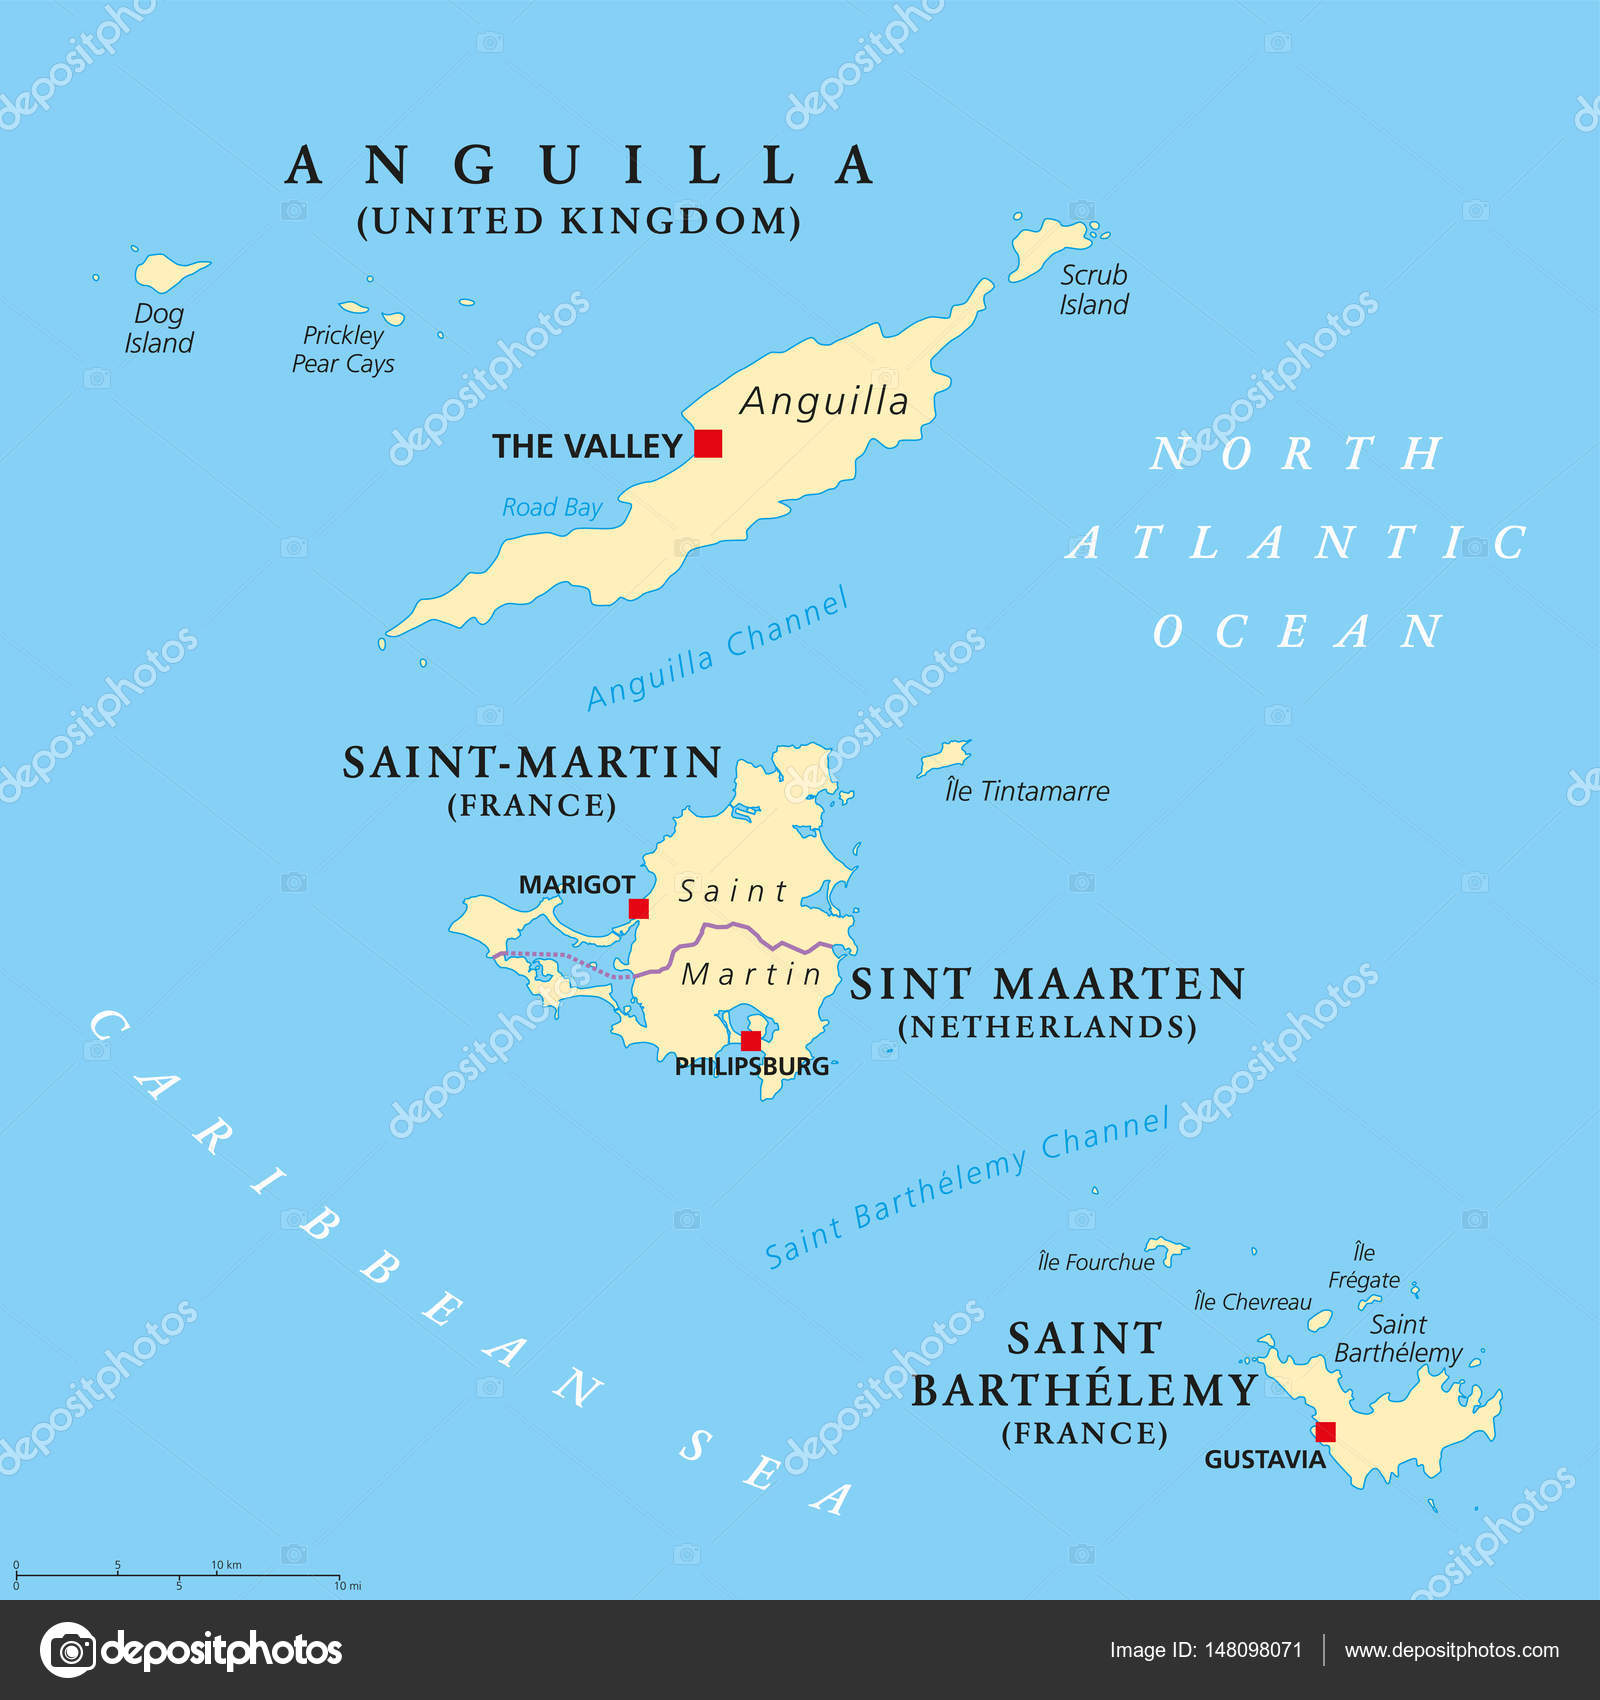 Anguilla SaintMartin Sint Maarten and Saint Barthelemy map